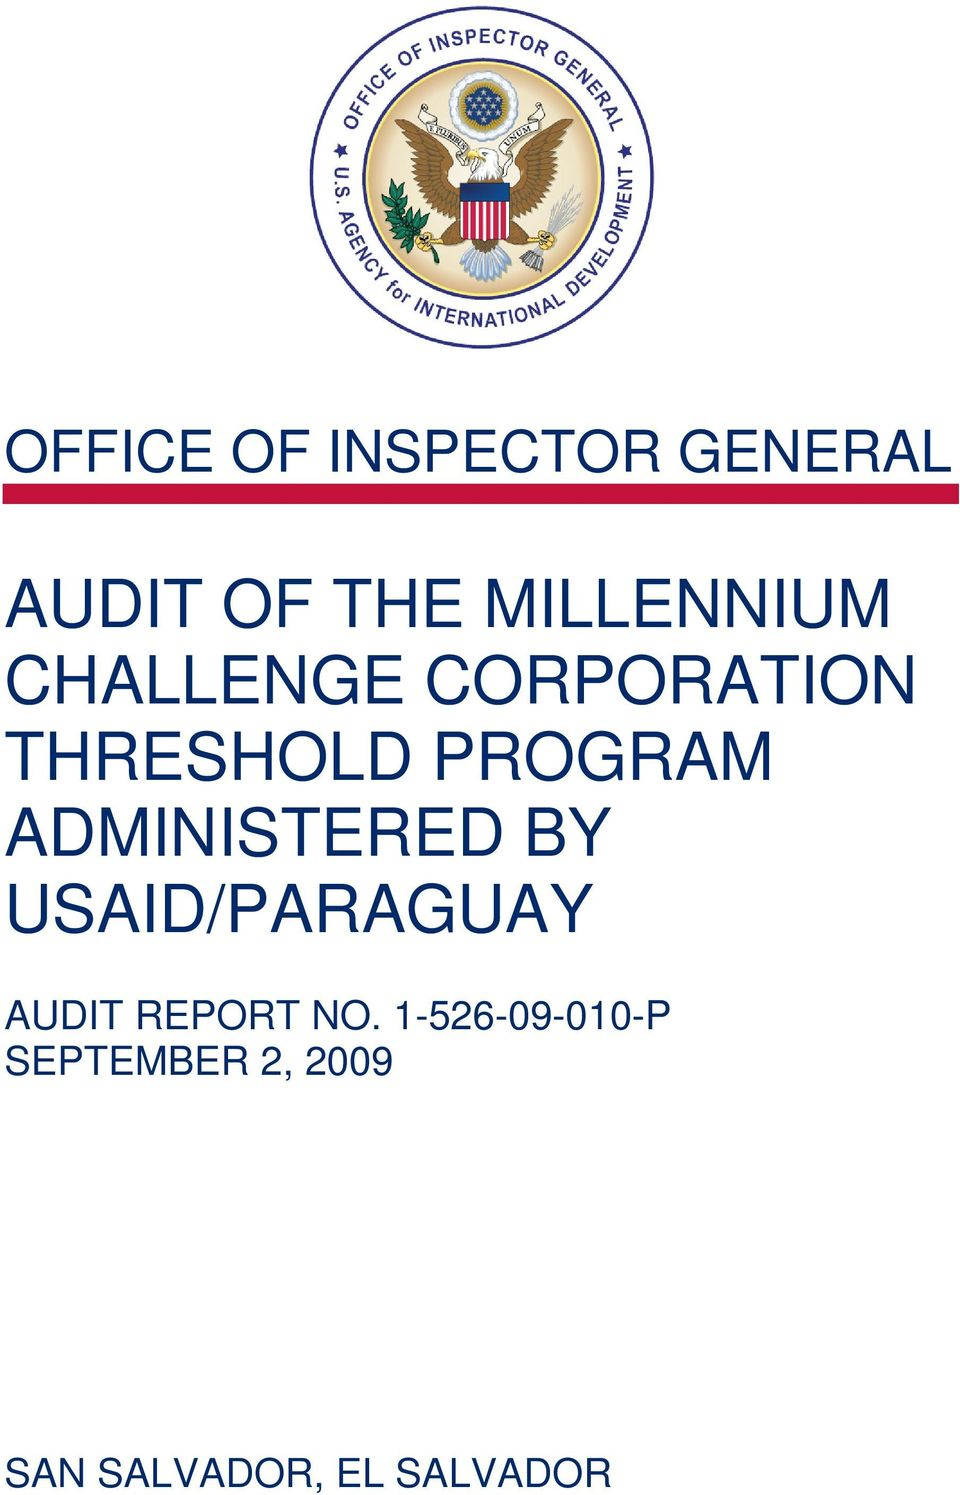 PROGRAM ADMINISTERED BY USAID/PARAGUAY AUDIT